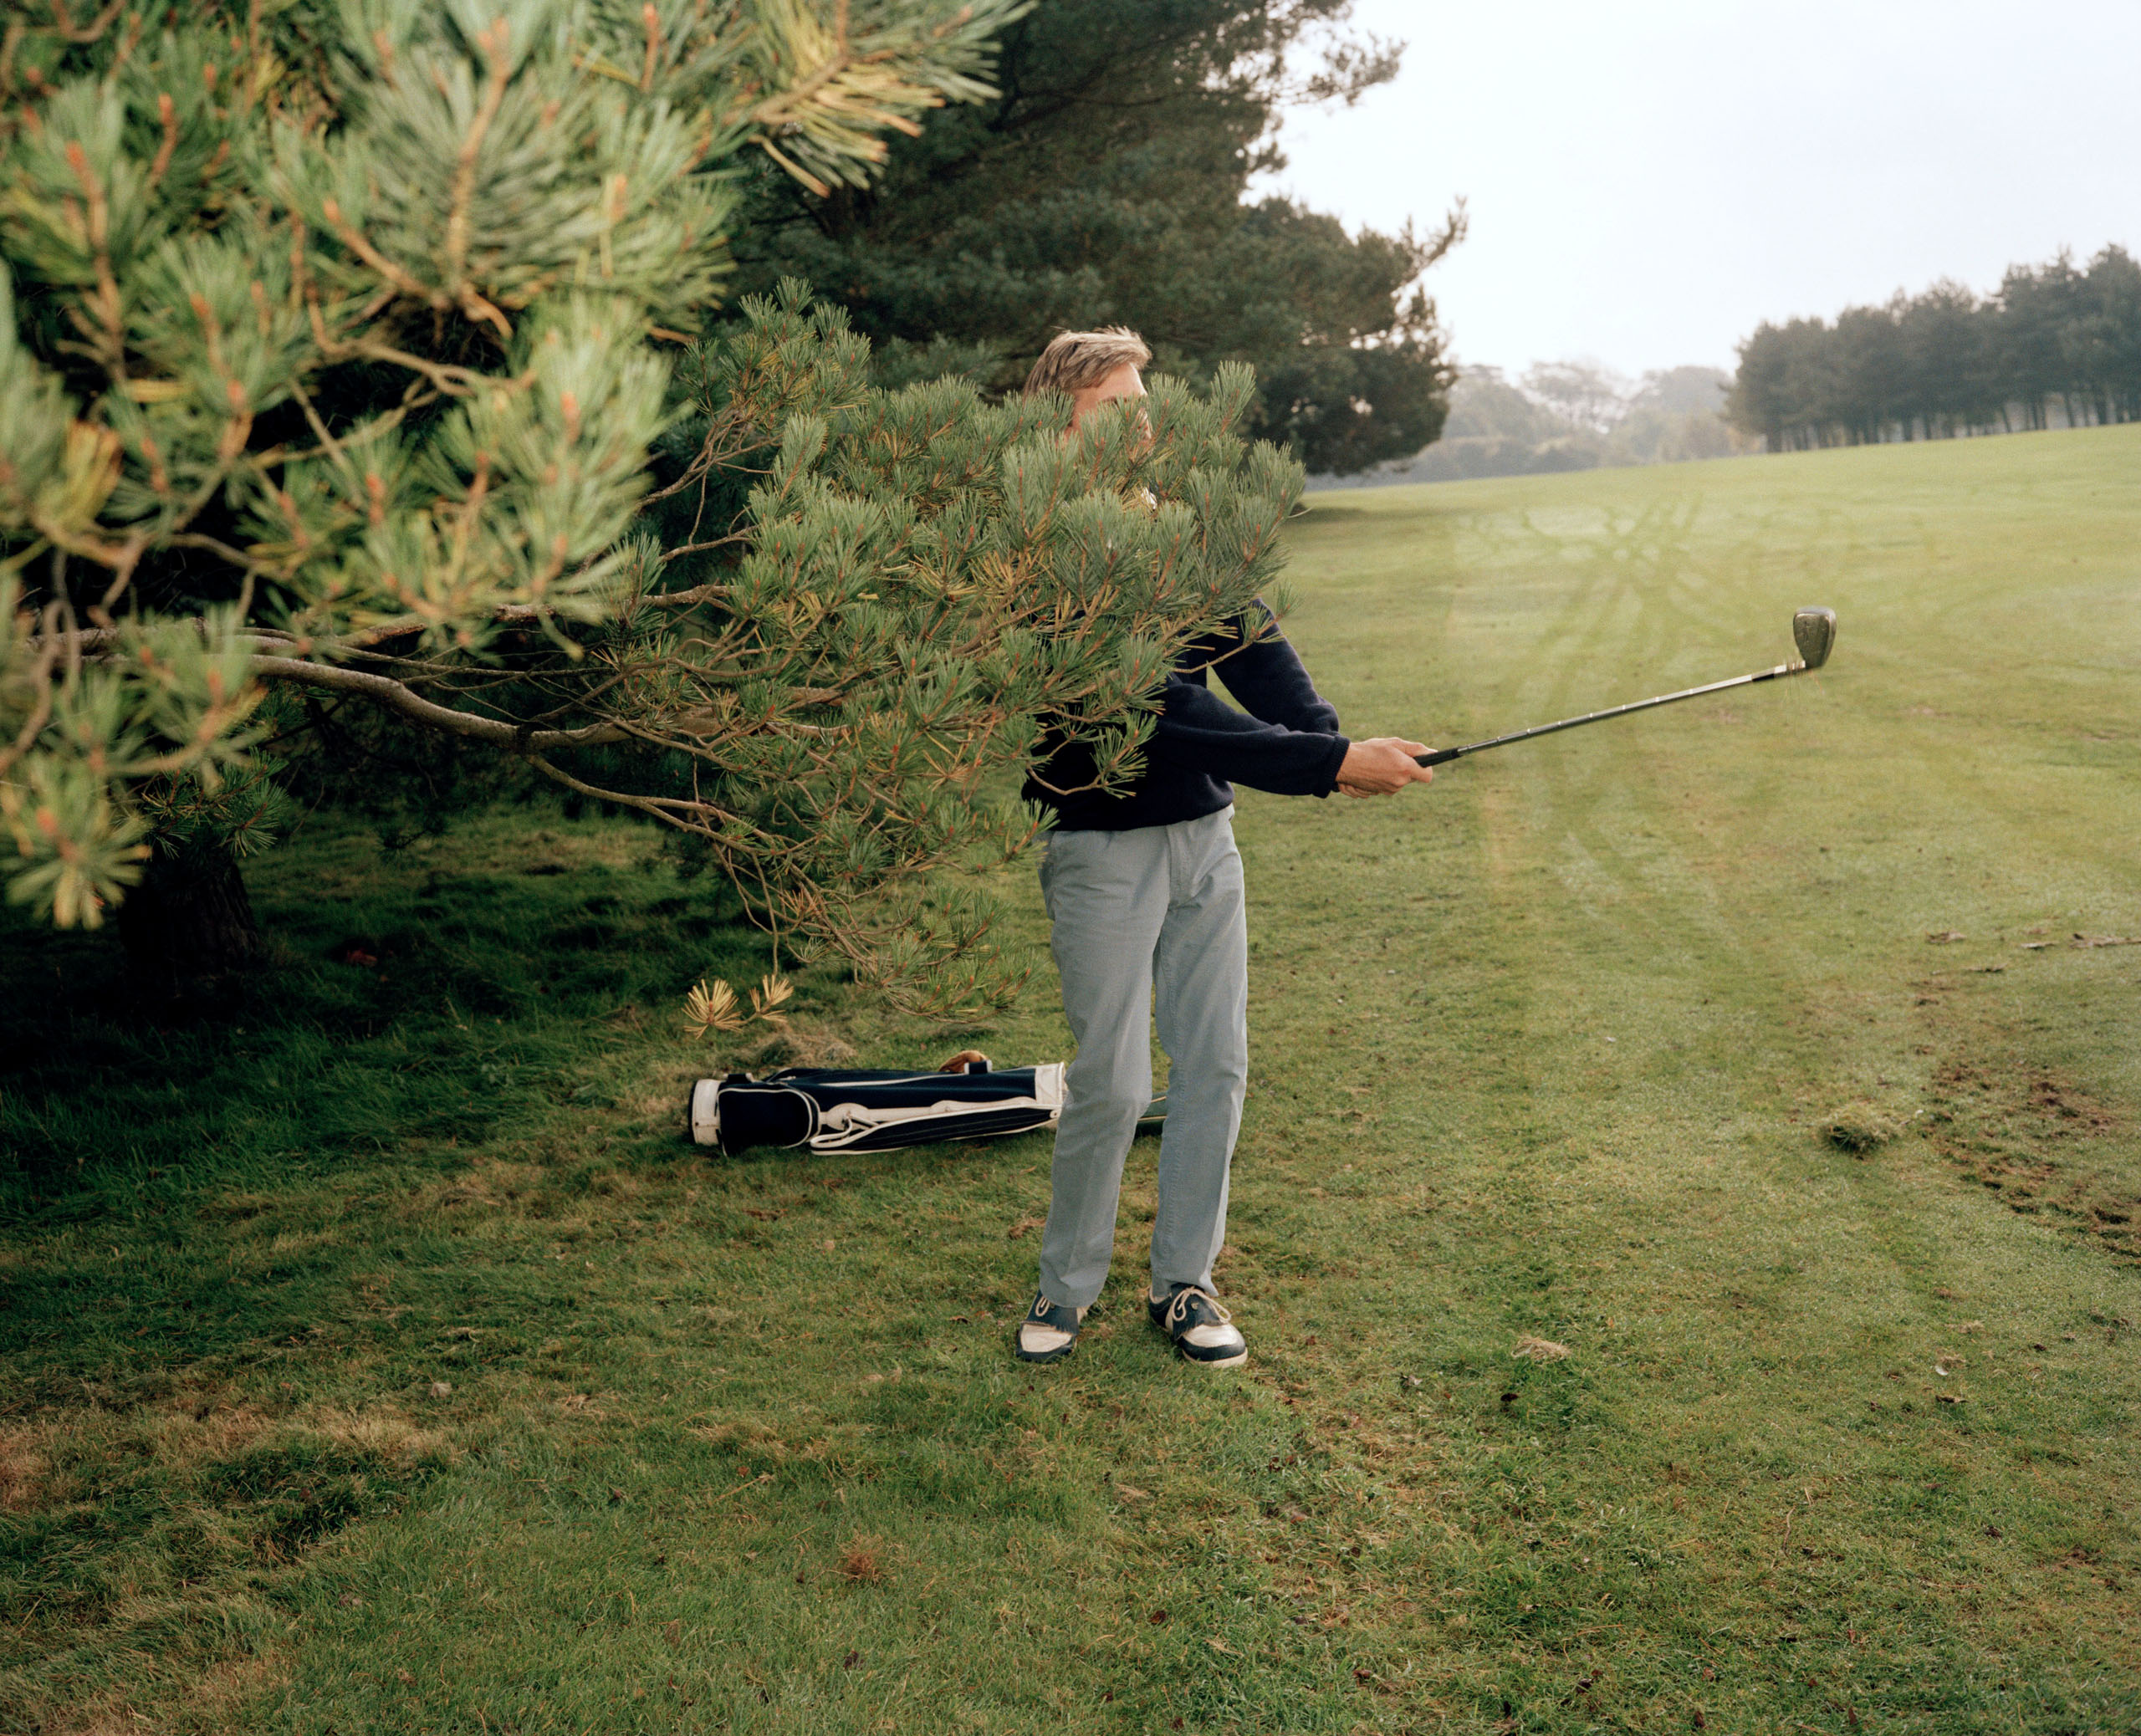 Getting Out Of Jail At England's Bristol & Clifton Golf Club In 1988. Photo by Martin Parr